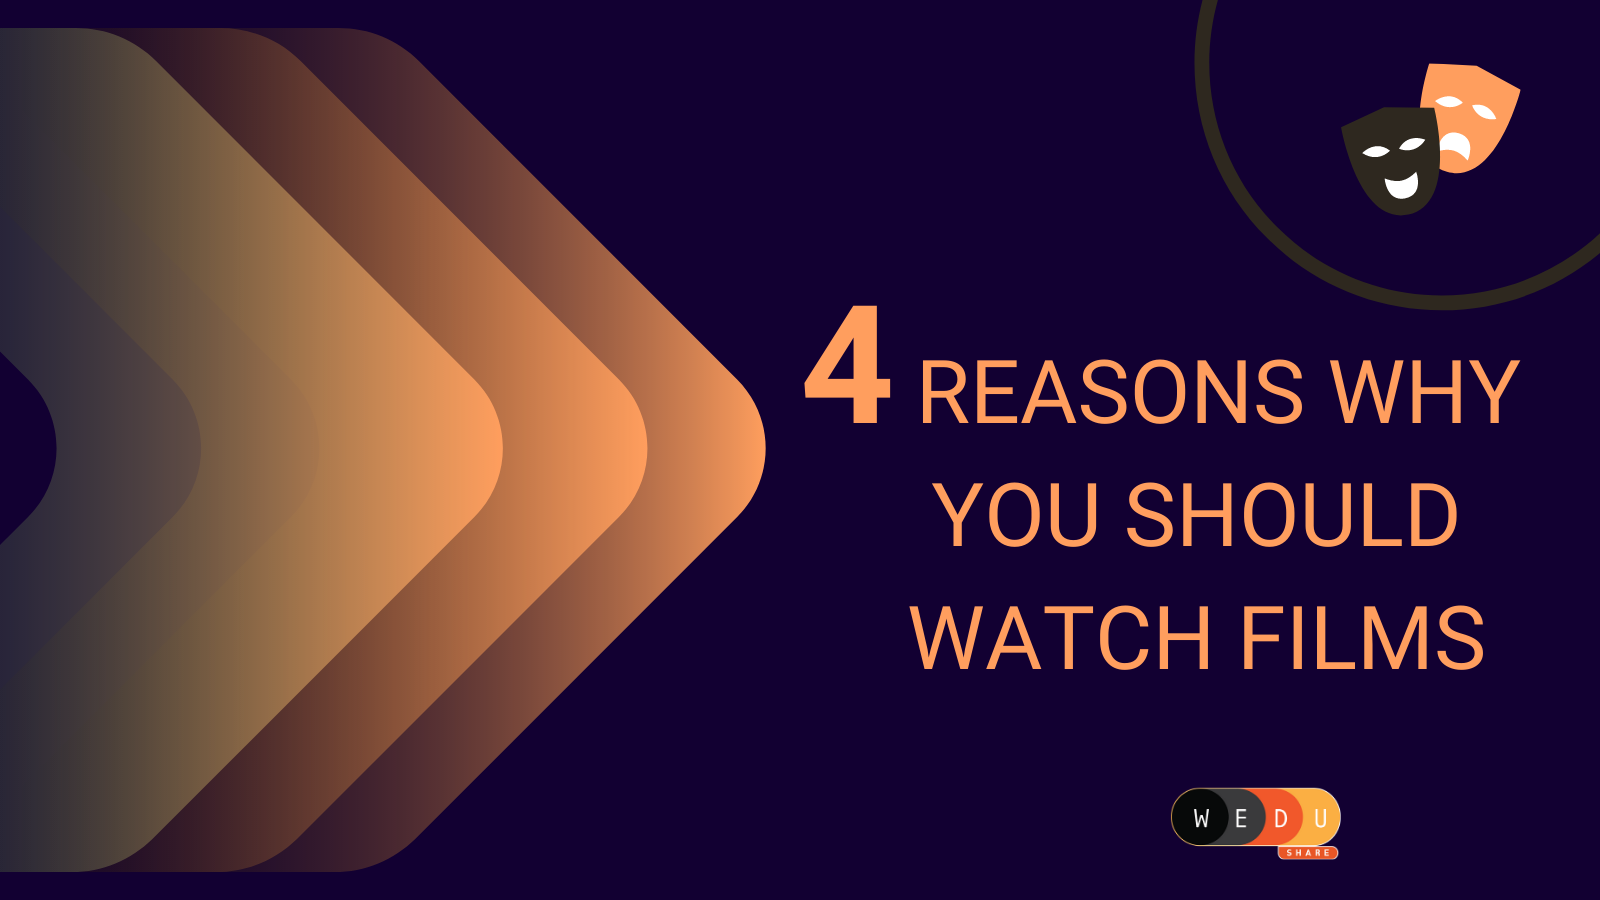 4 Reasons Why You Should Watch Films